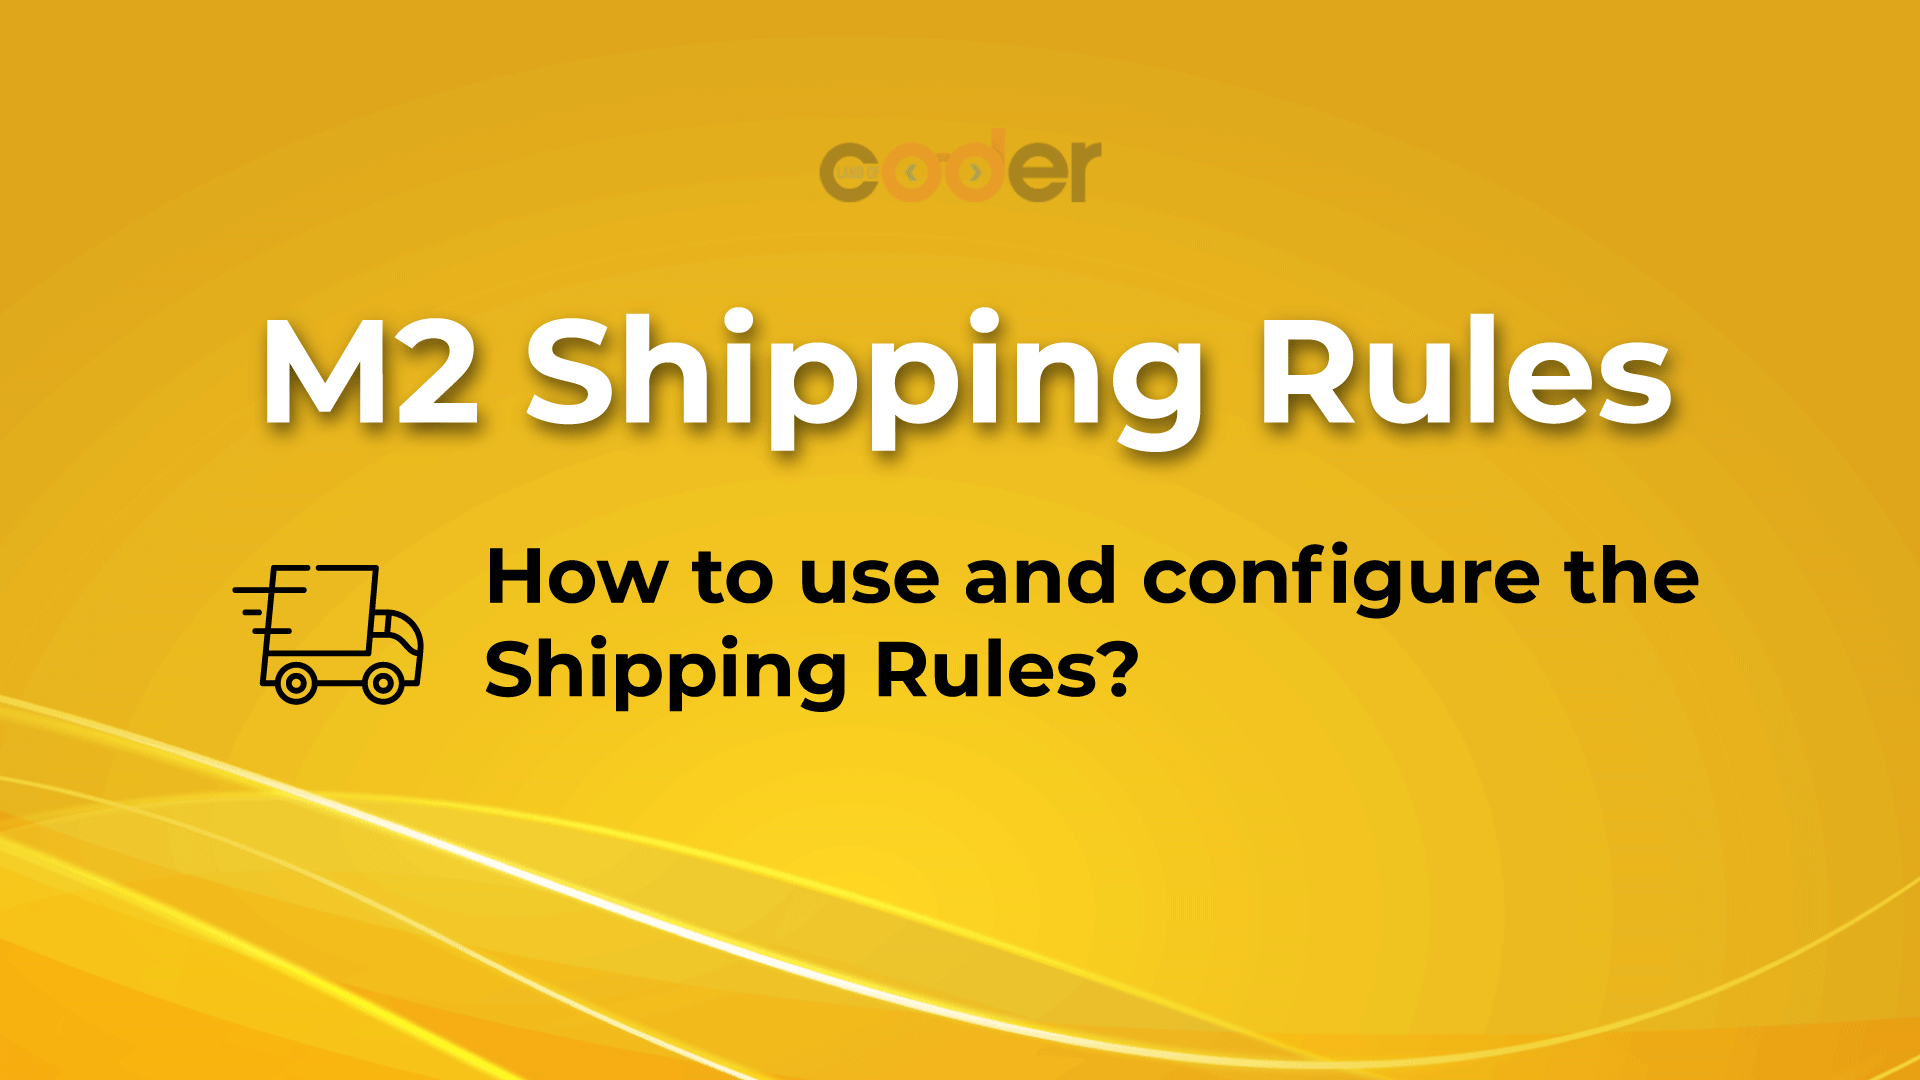 magneto 2 shipping rules video guide